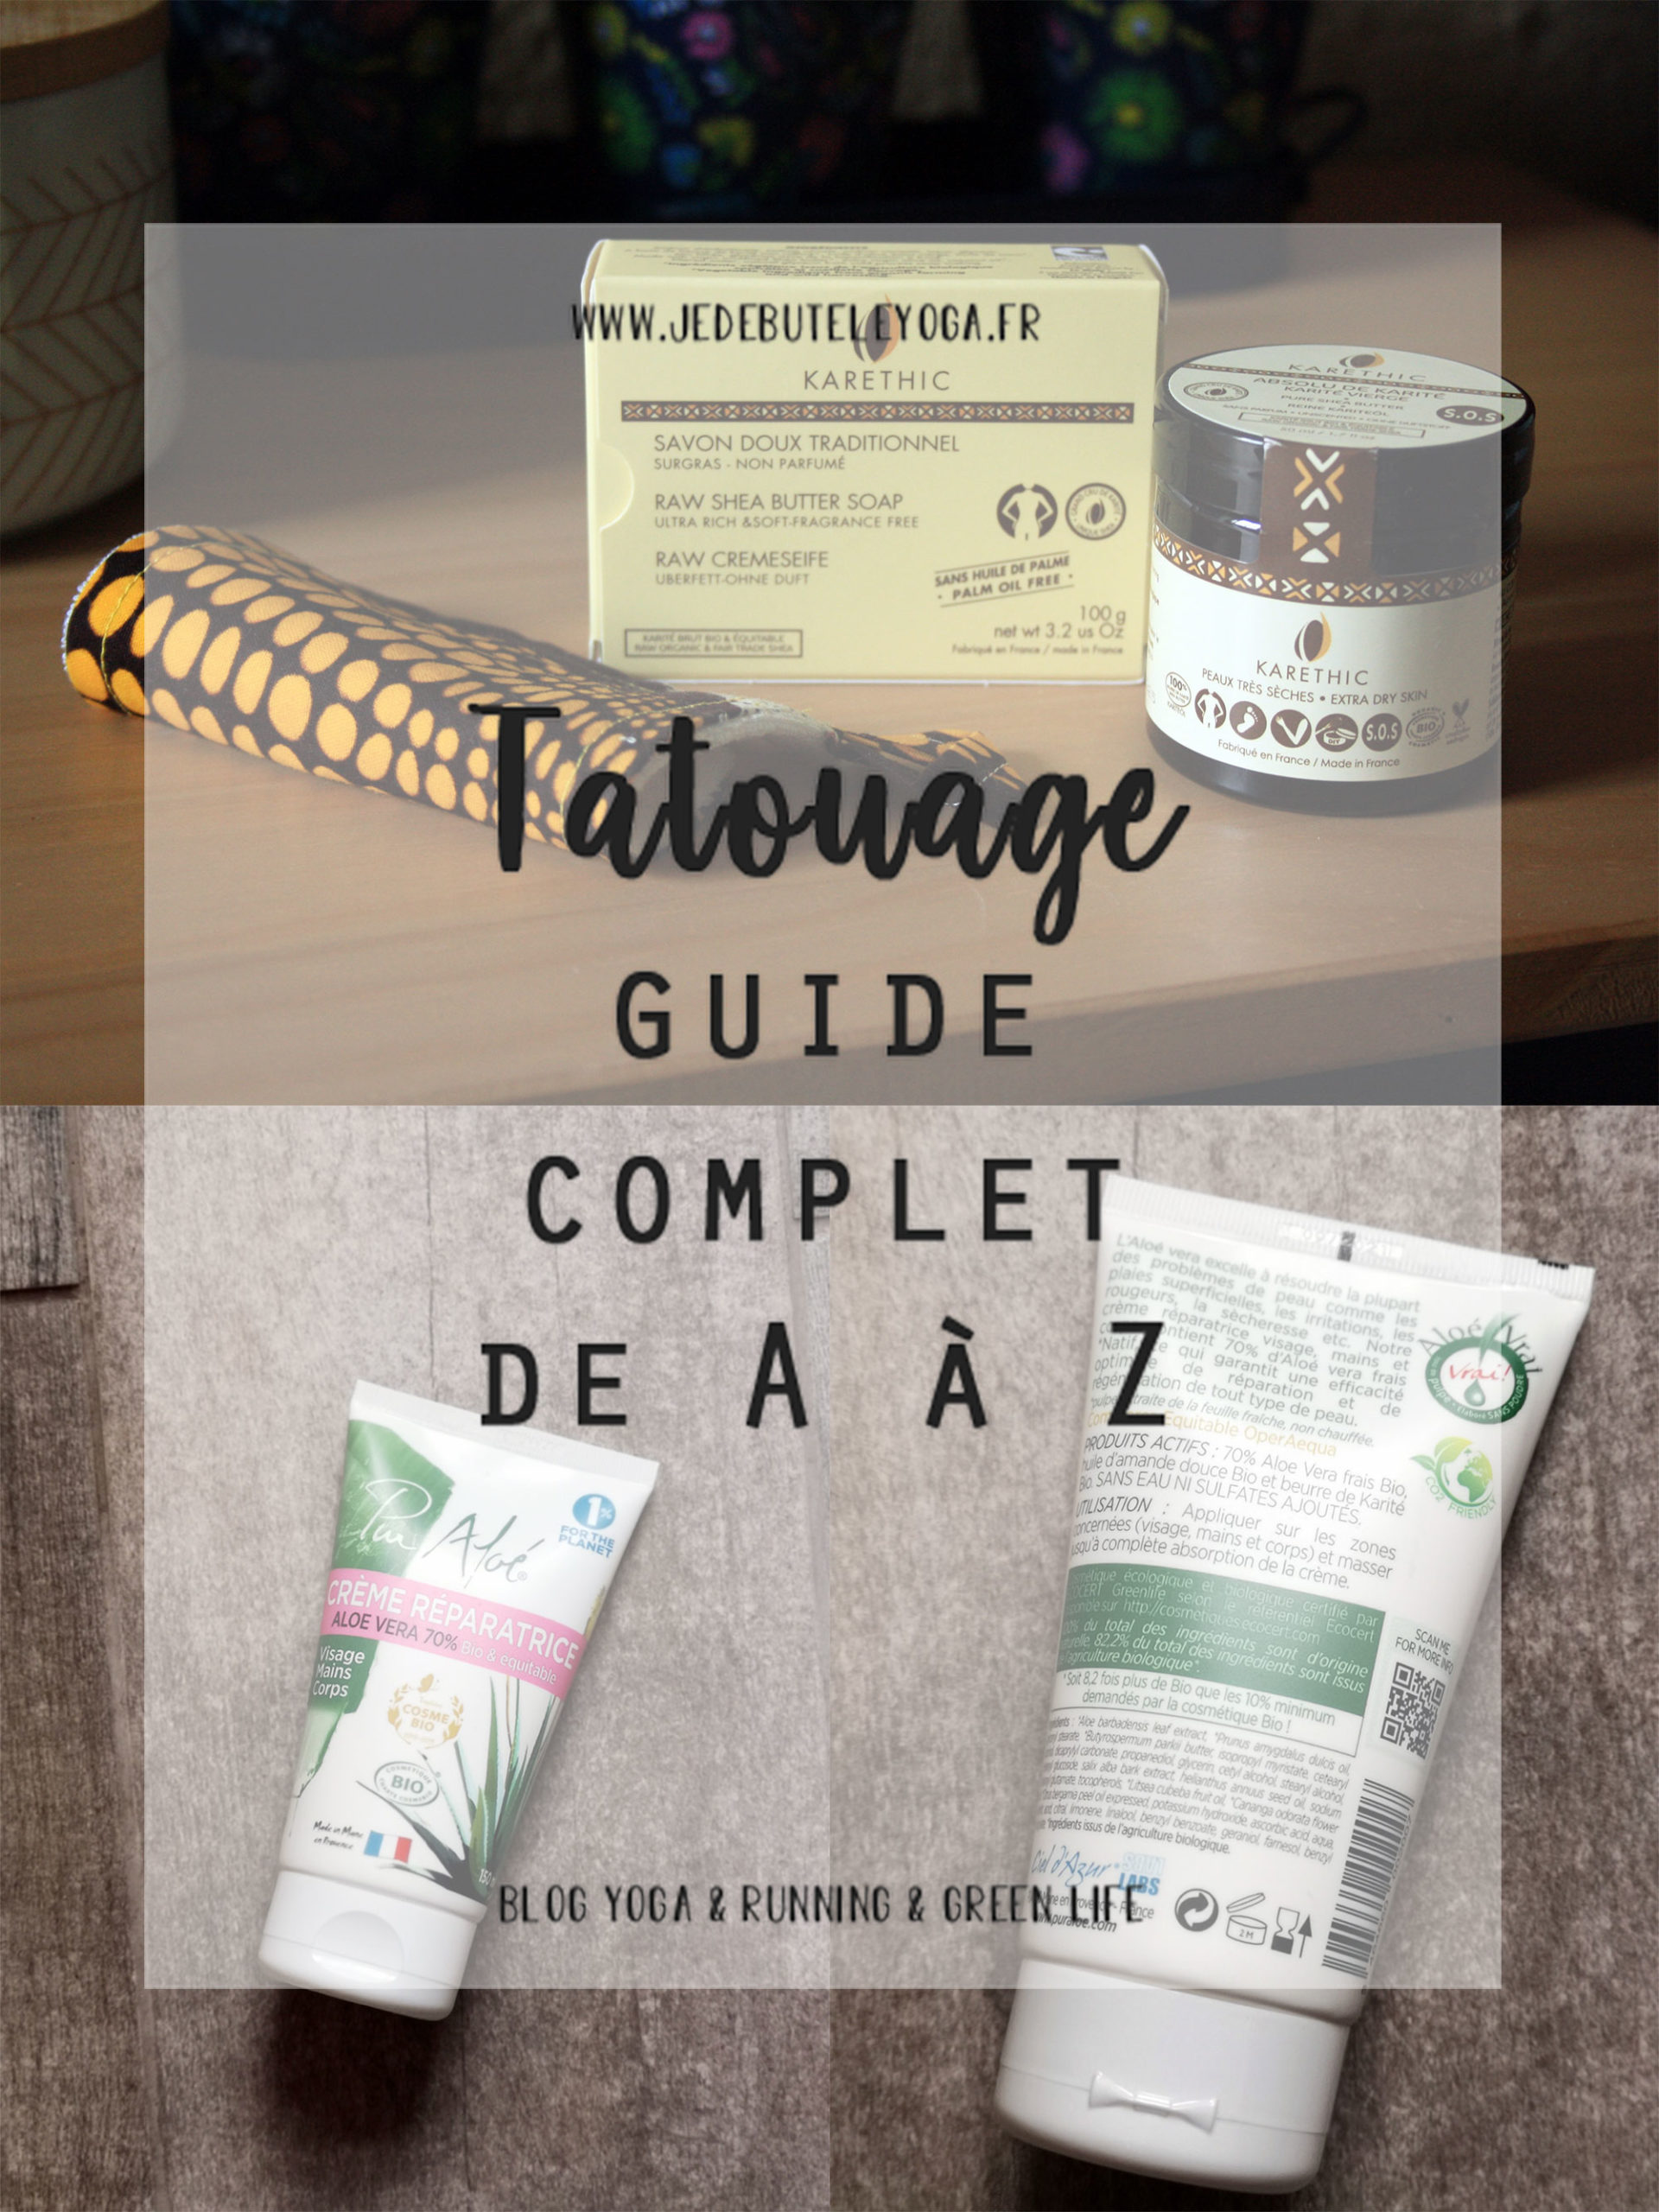 Tatouage, guide complet de a à z